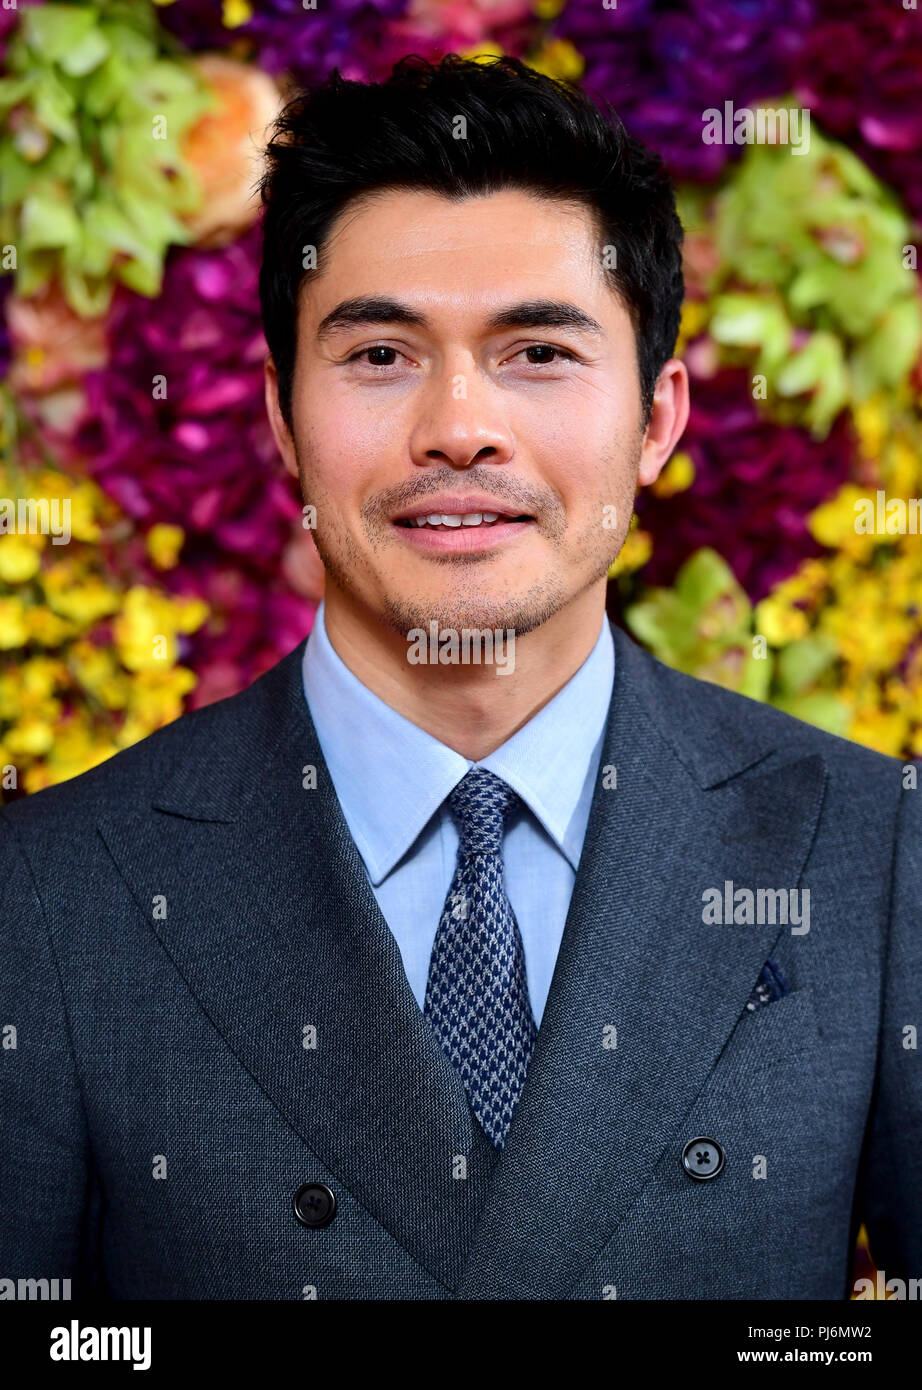 Henry Golding attending the Crazy Rich Asians Premiere held at Ham Yard  Hotel, London.